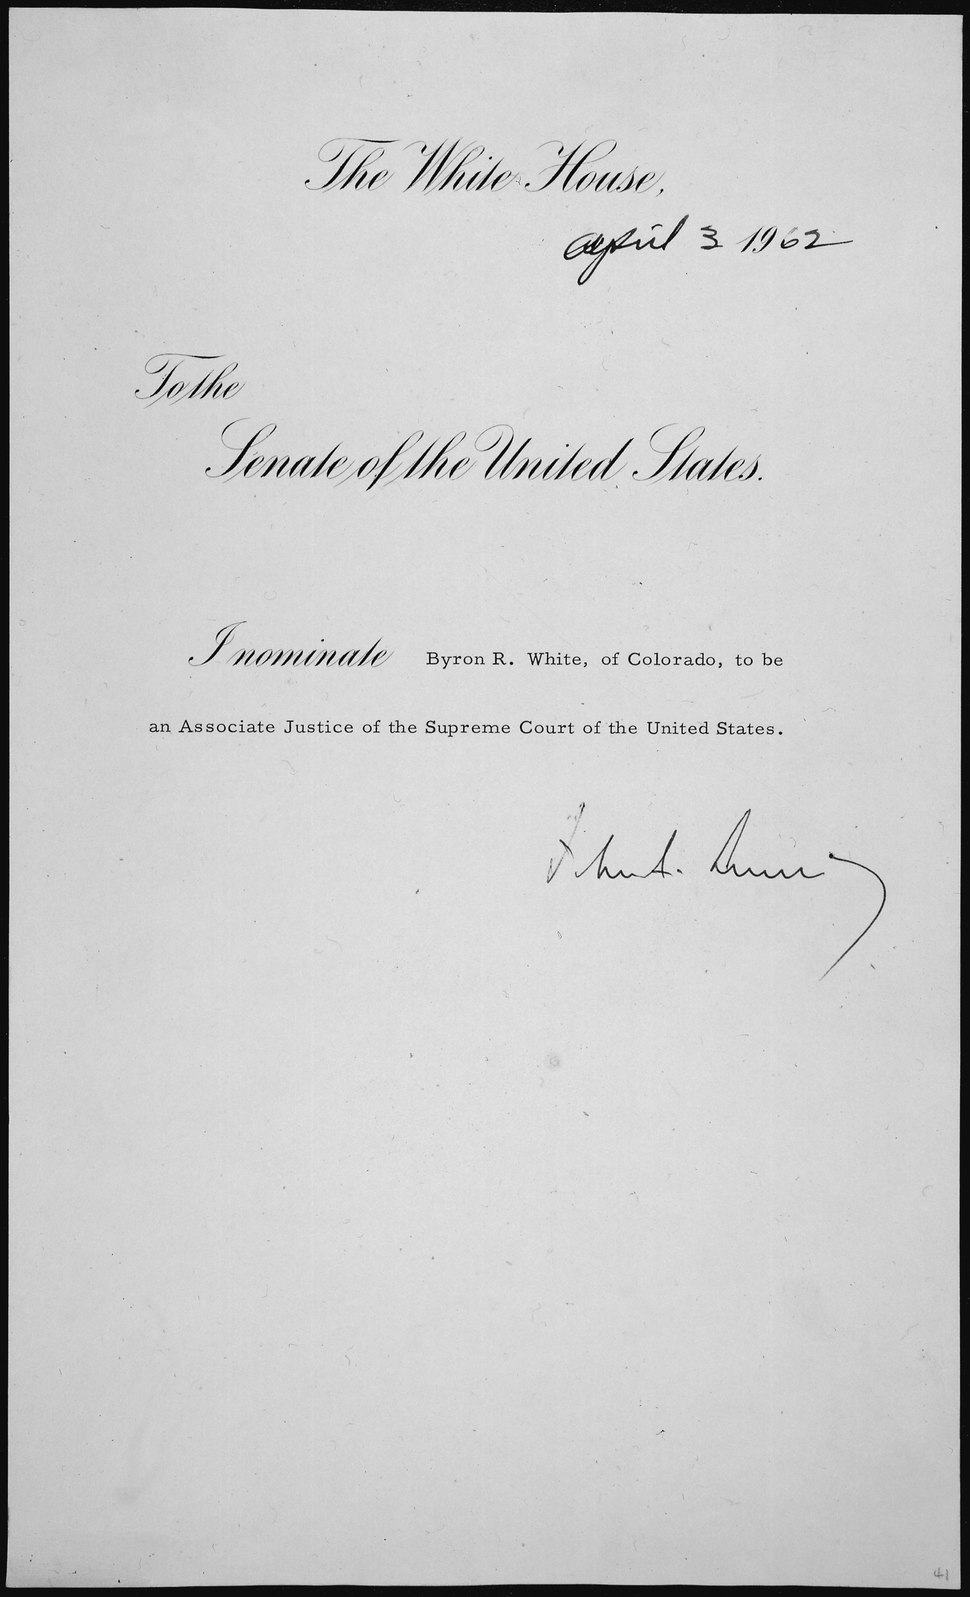 Message of President John F. Kennedy nominating Byron R. White to be an Associate Justice of the Supreme Court, 04-03-19 - NARA - 306363